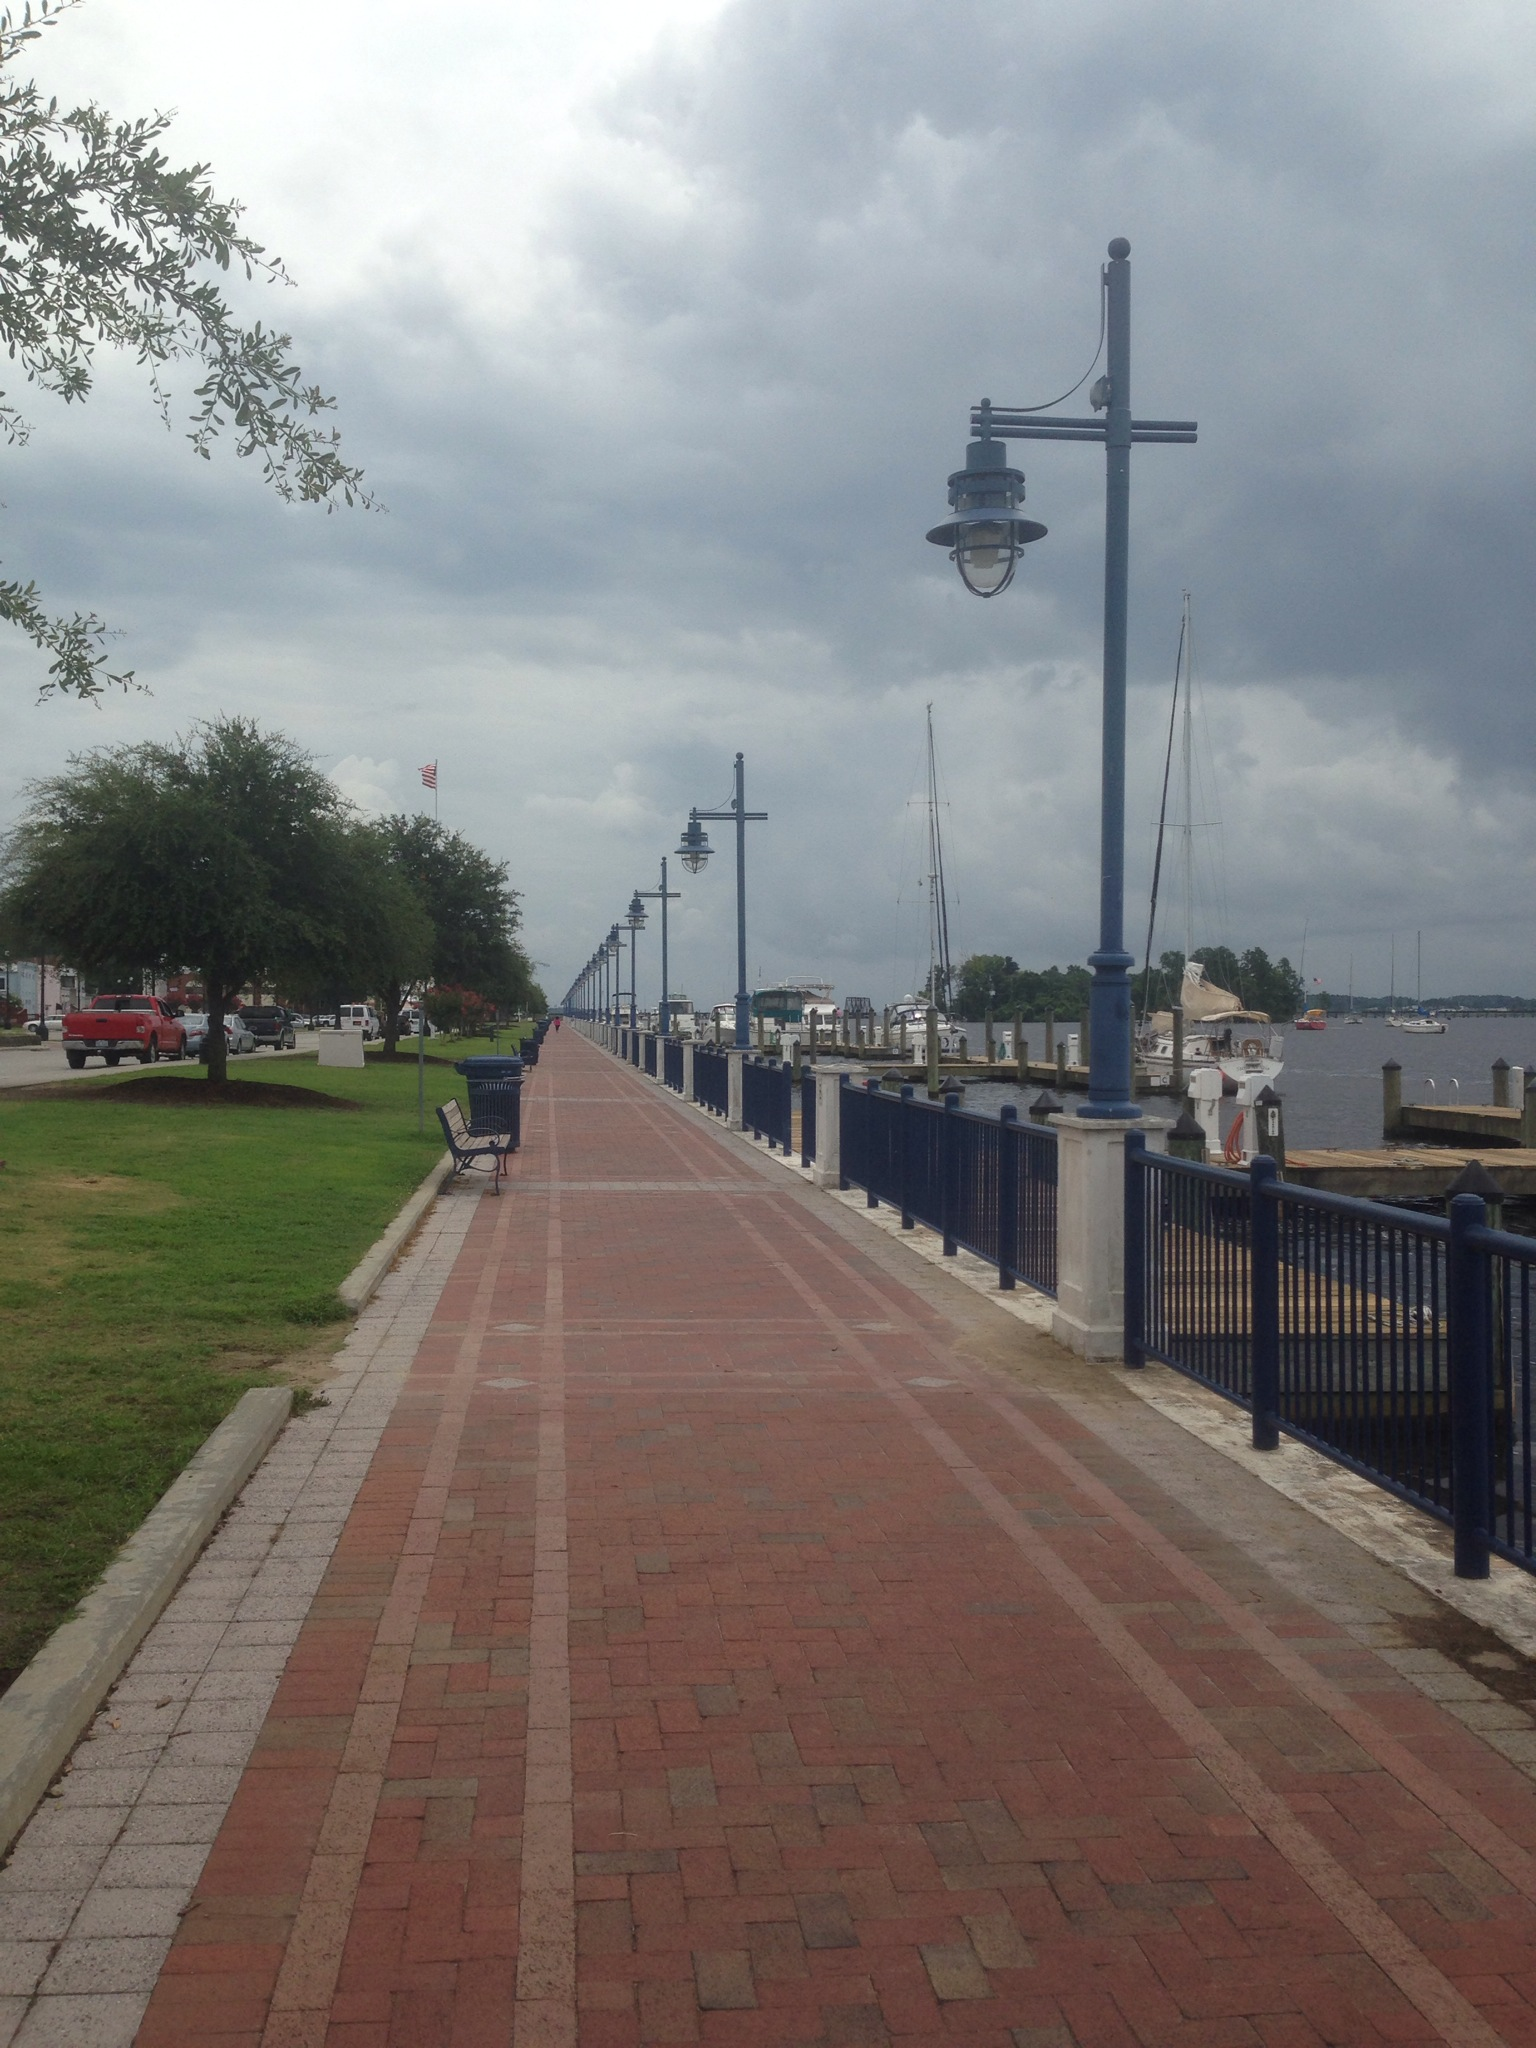 the waterfront on the river in downtown washington nc is very nice